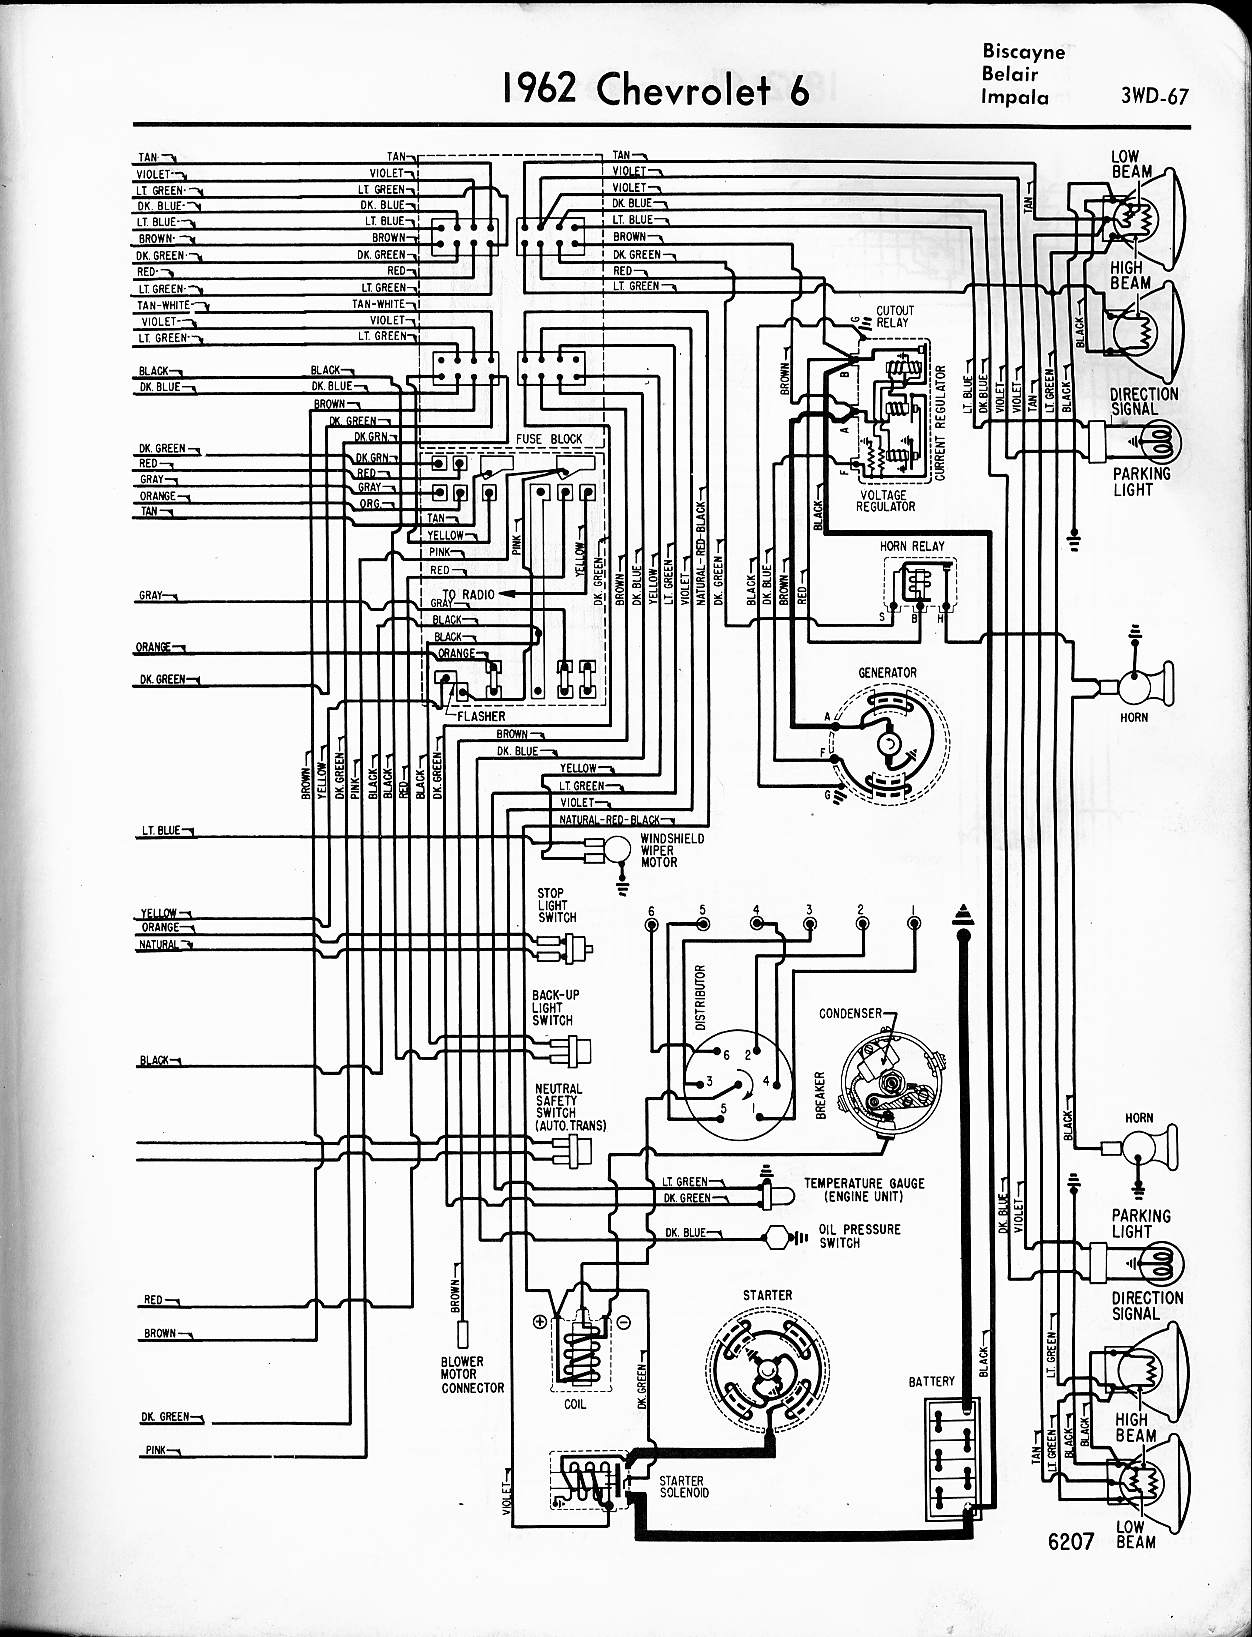 76 c10 wiring diagram acura truck slx l mfi sohc cyl repair guides 55 Chevy Ignition Switch Wiring Diagram wiring diagram for chevy trucks wiring diagram 1985 chevy truck 3500 sel ignition switch wire diagram